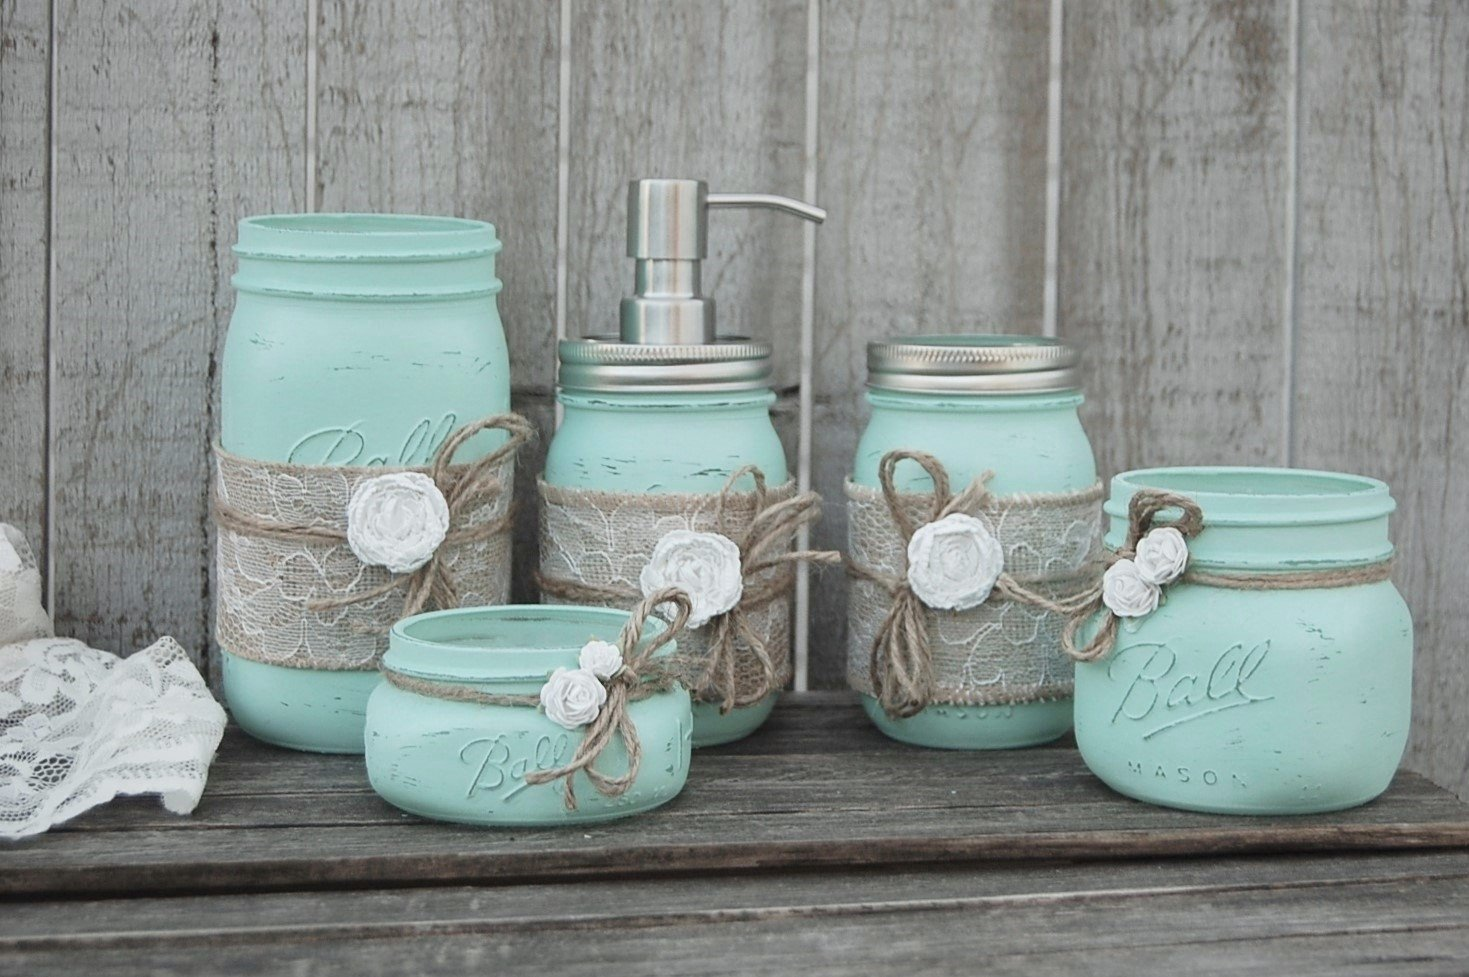 Teal and Gray Bathroom Decor Best Of Teal and Gray Bathroom Accessories